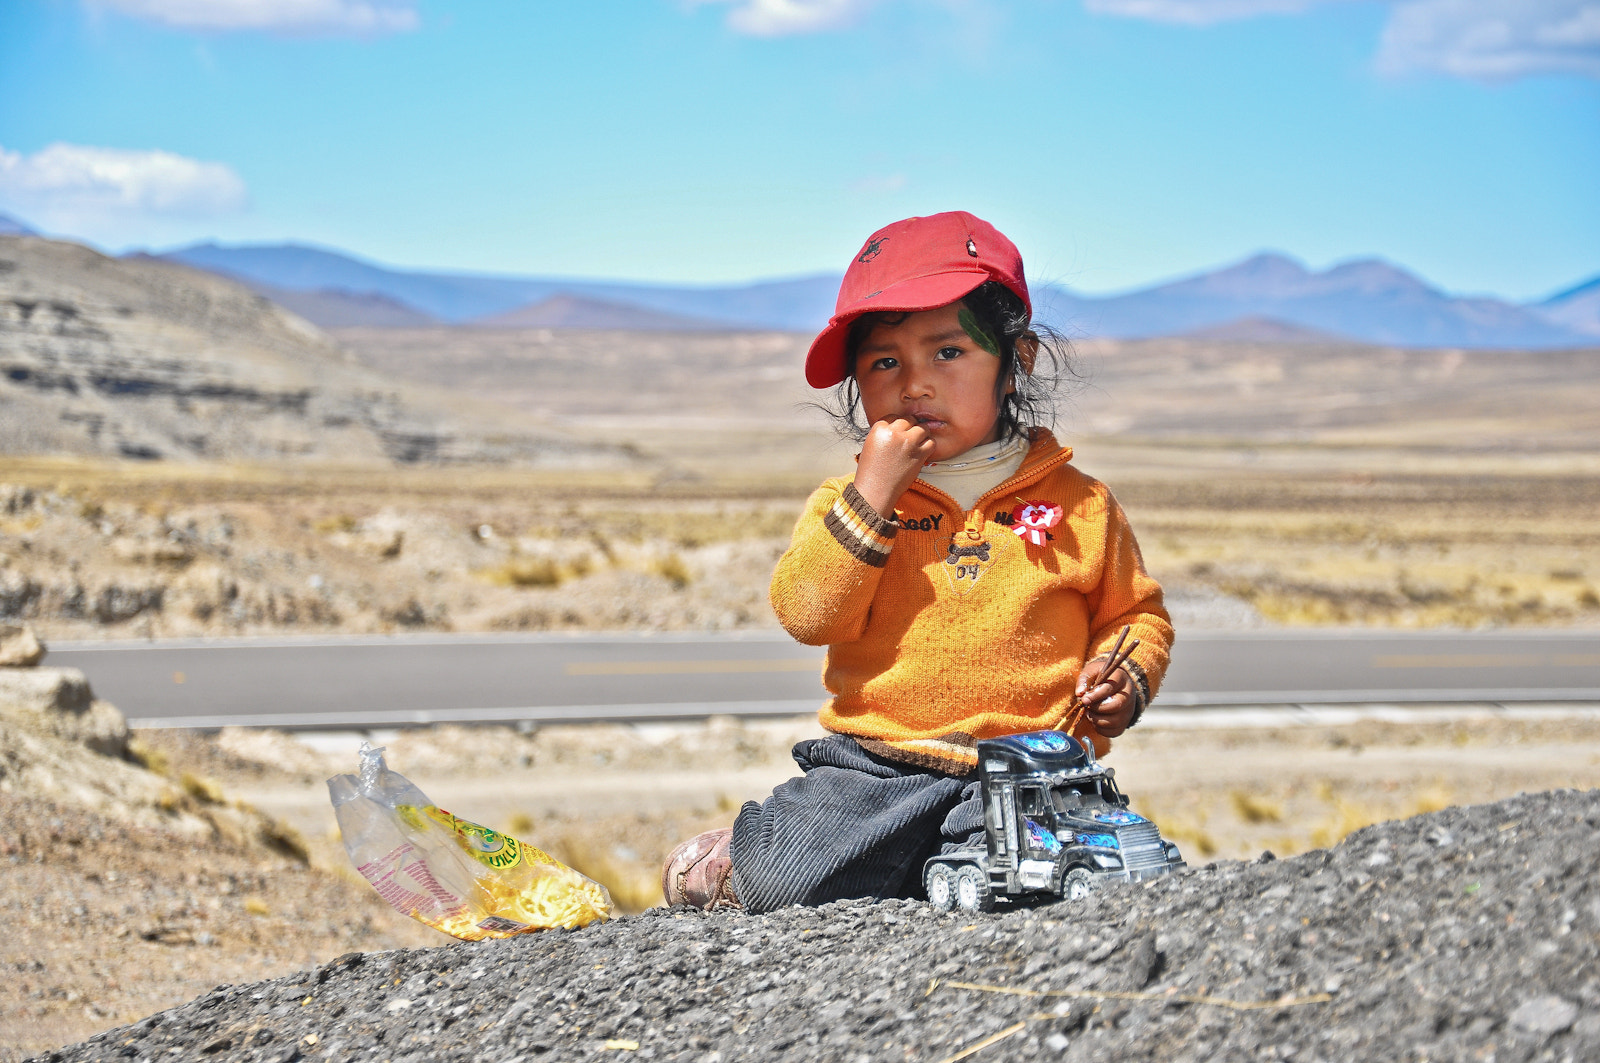 Photograph Peruvian girl playing with truck by Rui Carvalho on 500px